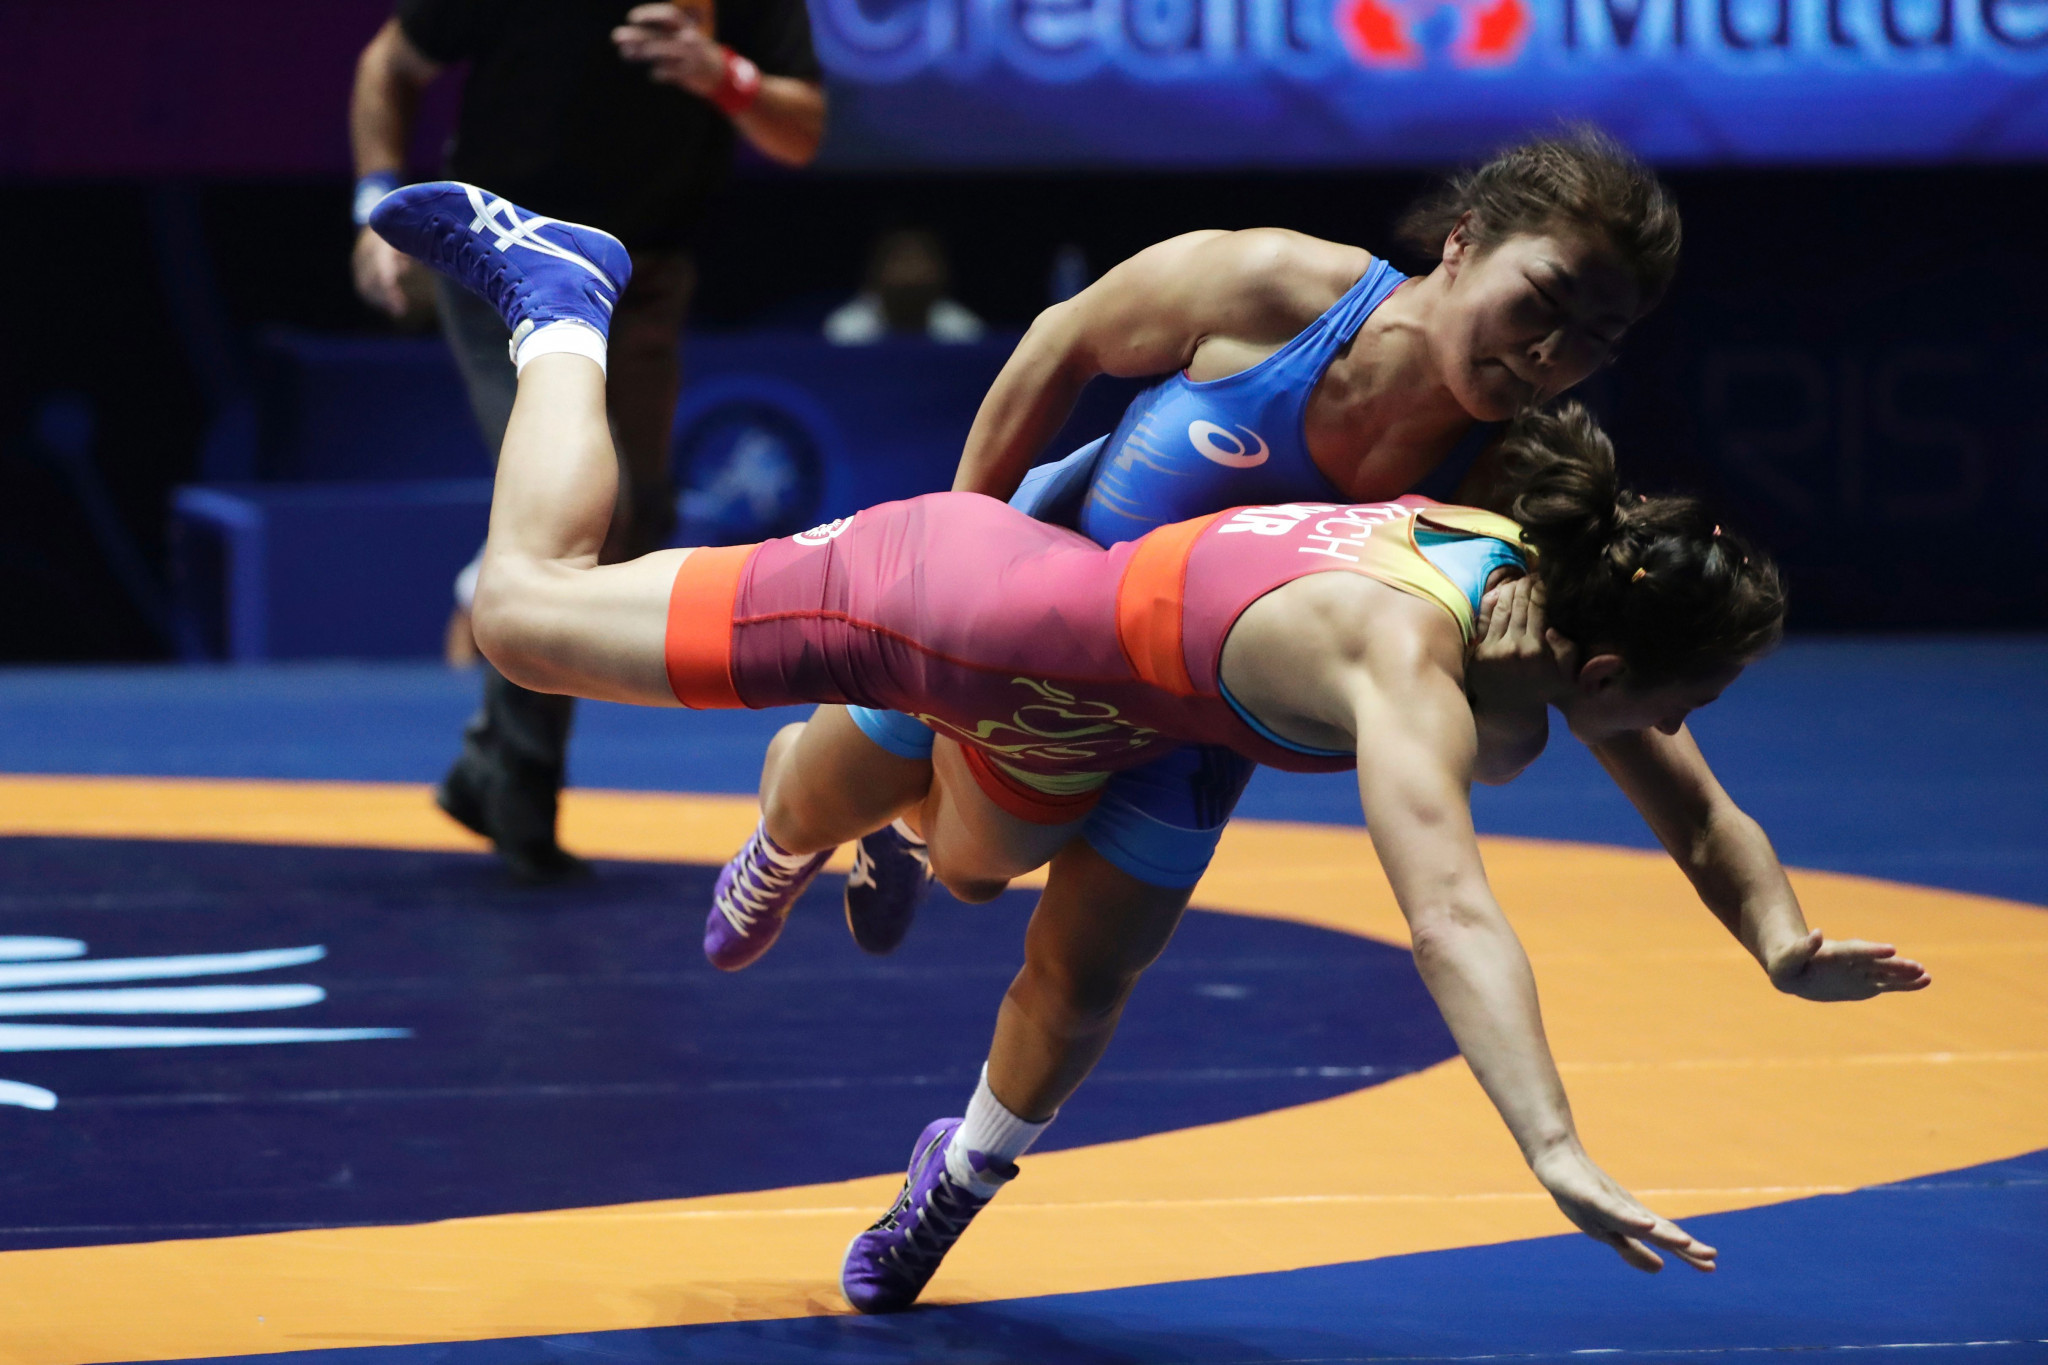 Ukraine to compete at European Wrestling Championships in Russia after Government lift ban